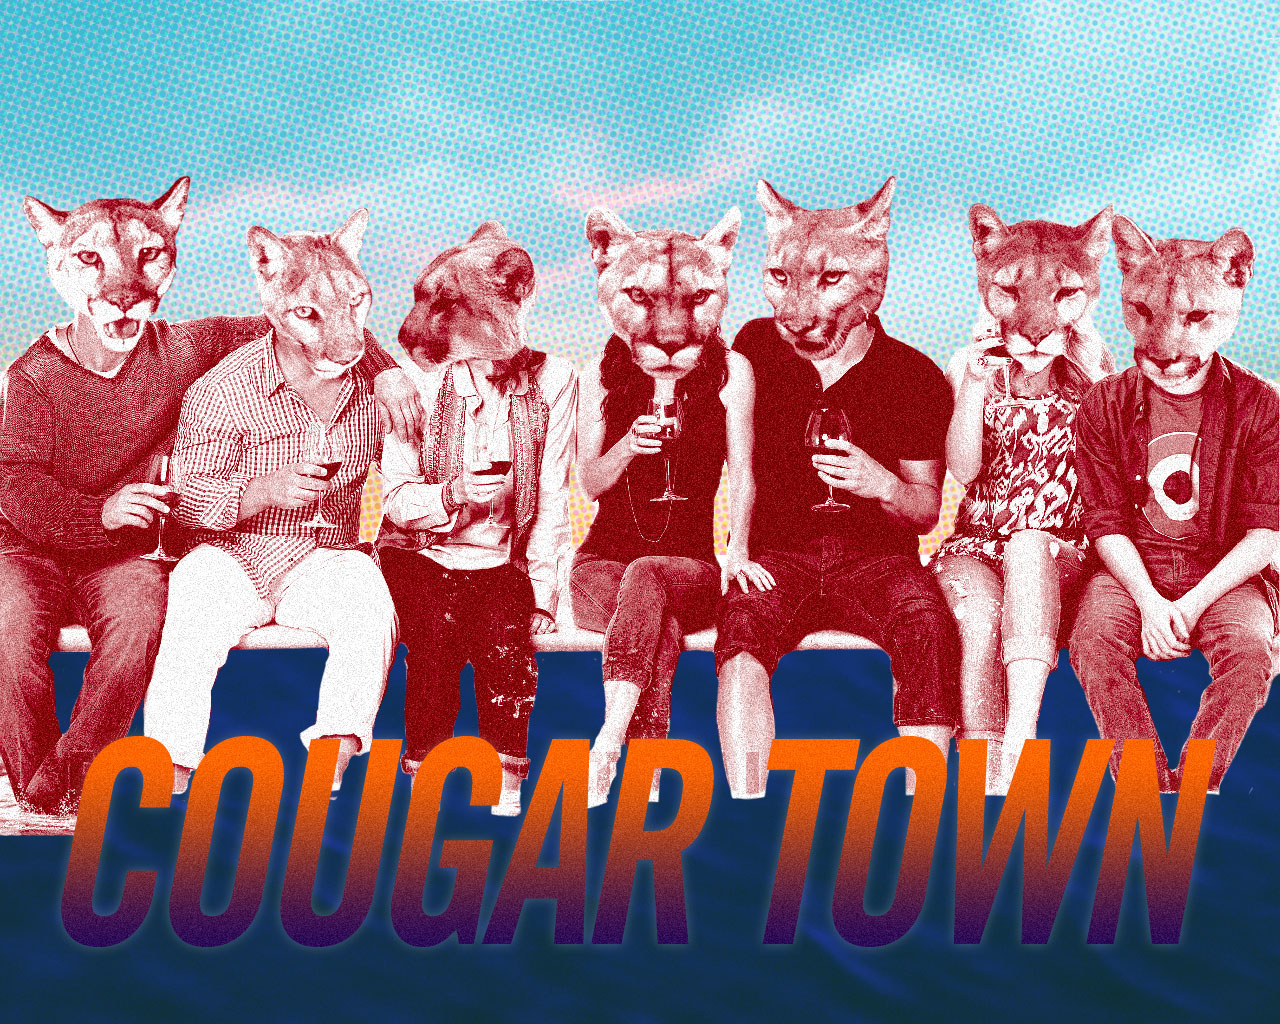 Cougar Town With Actual Cougars